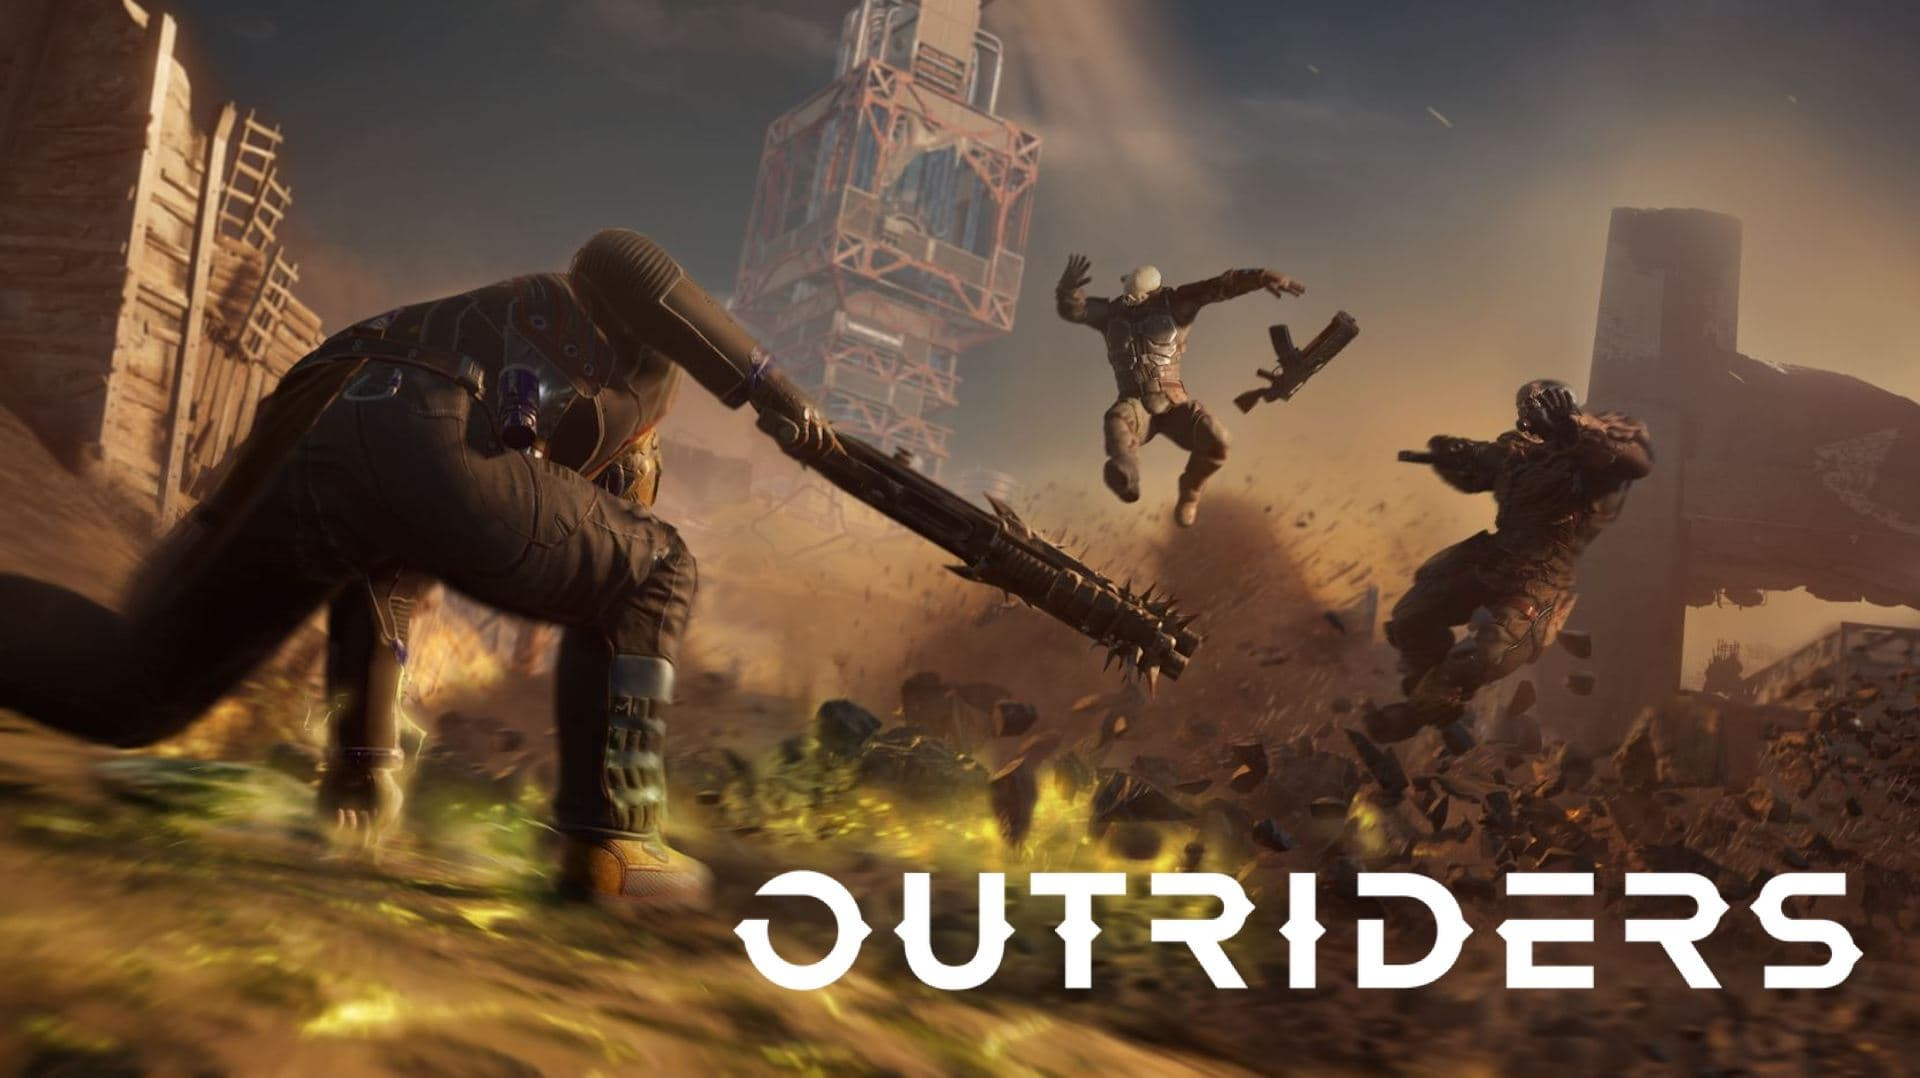 outriders-image-2